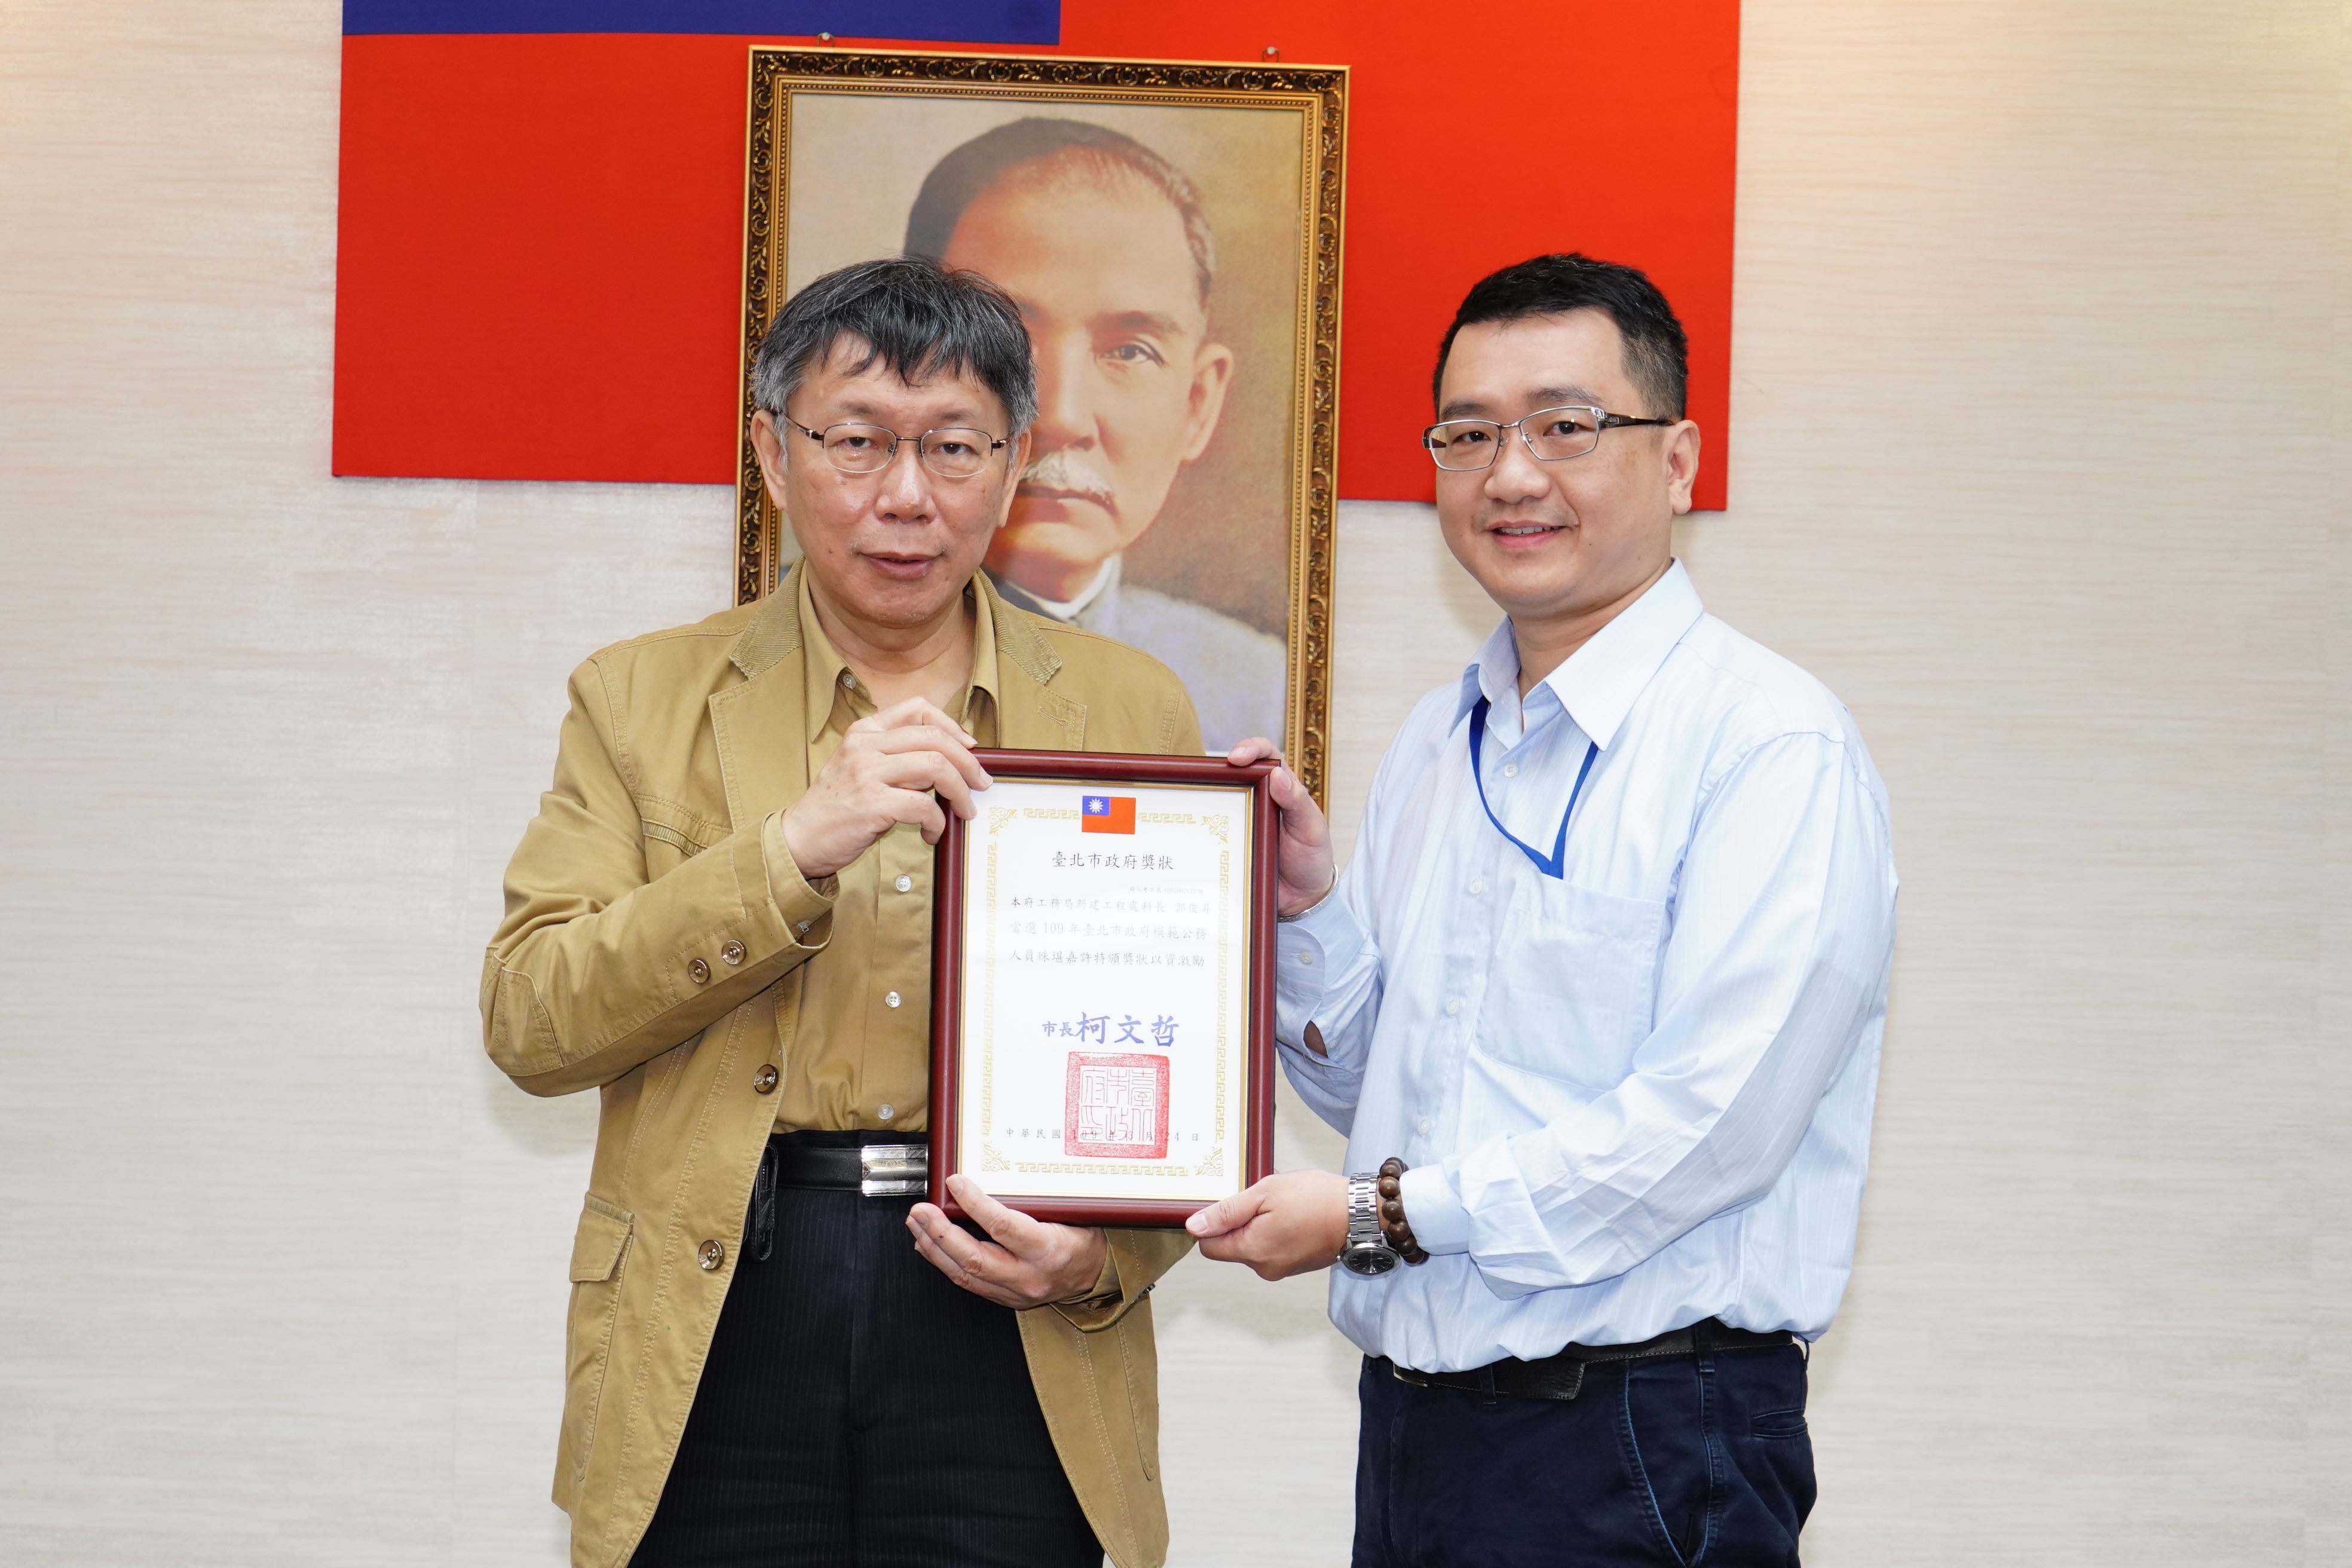 Chun-Sheng Kuo , the Public Works Section Supervisor of New Construction Office awarded as 2020 Taipei City Government's Outstanding Civil Servant